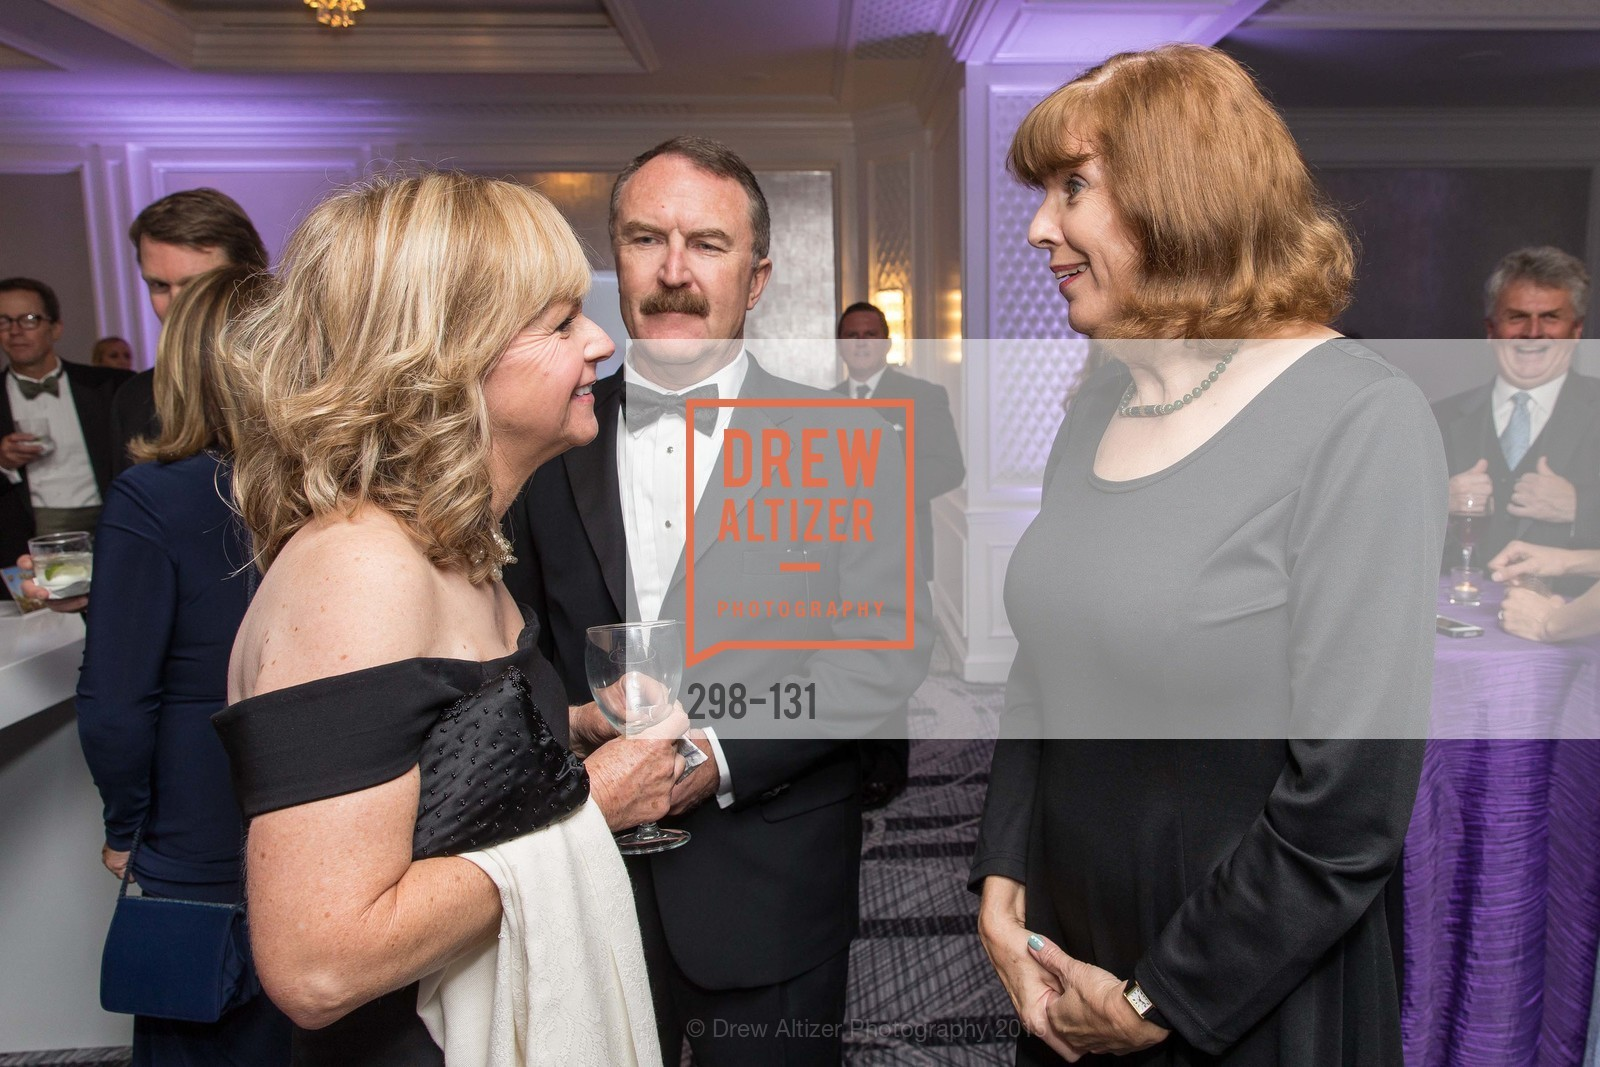 Vickie Mallon, Tom Mallon, Julie Rickert, JUVENILE DIABETES RESEARCH FOUNDATION  Hope Gala, The Ritz-Carlton, May 29th, 2015,Drew Altizer, Drew Altizer Photography, full-service agency, private events, San Francisco photographer, photographer california